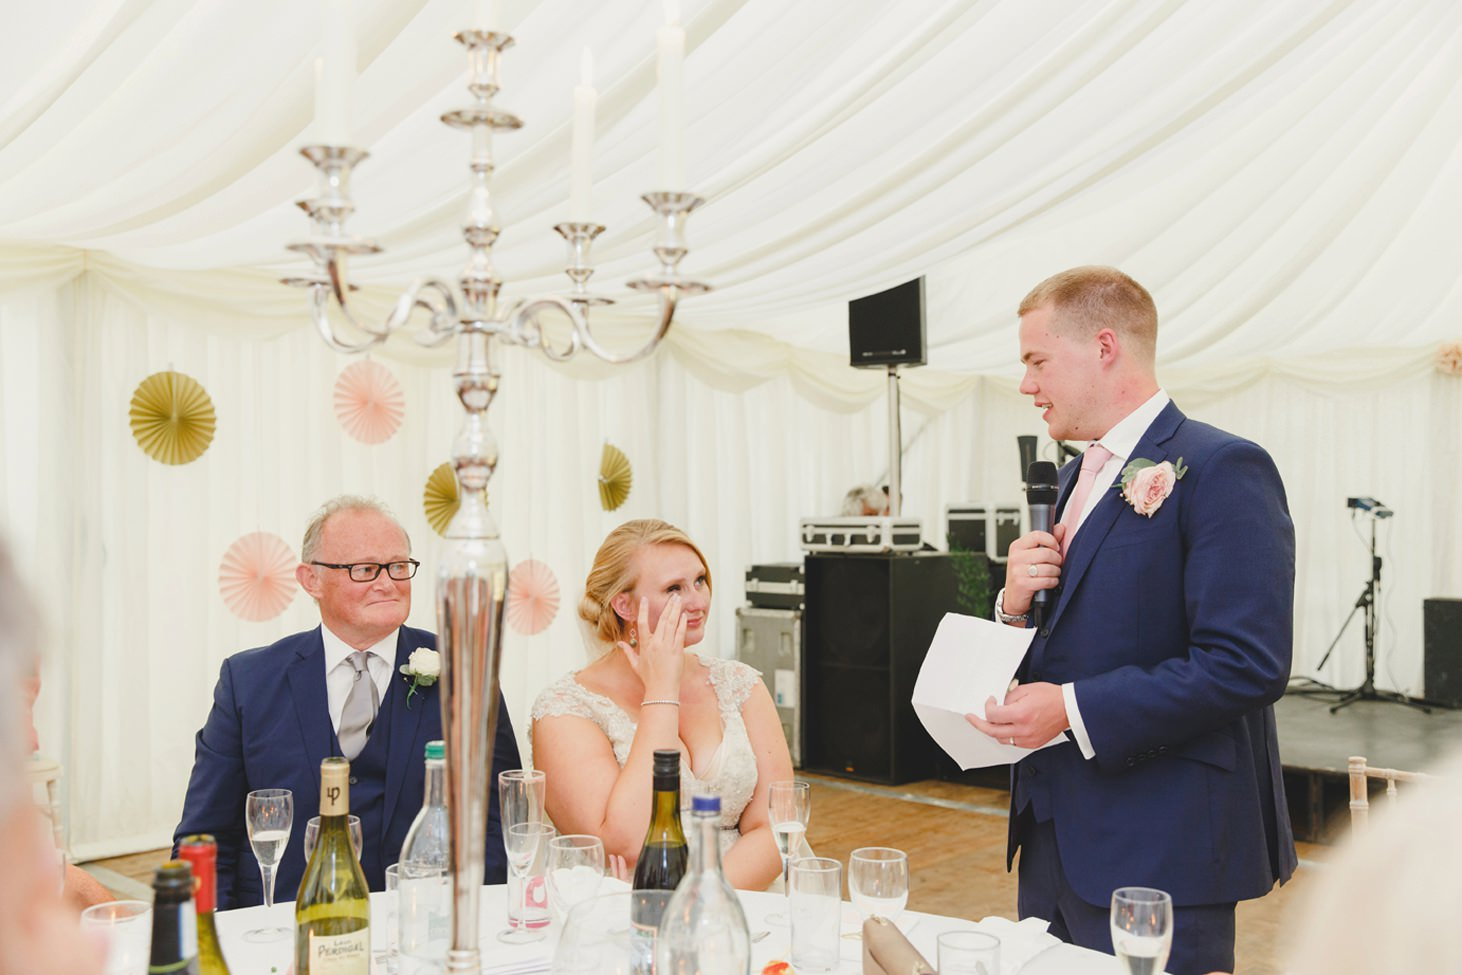 oxfordshire wedding photography grooms speech to bride